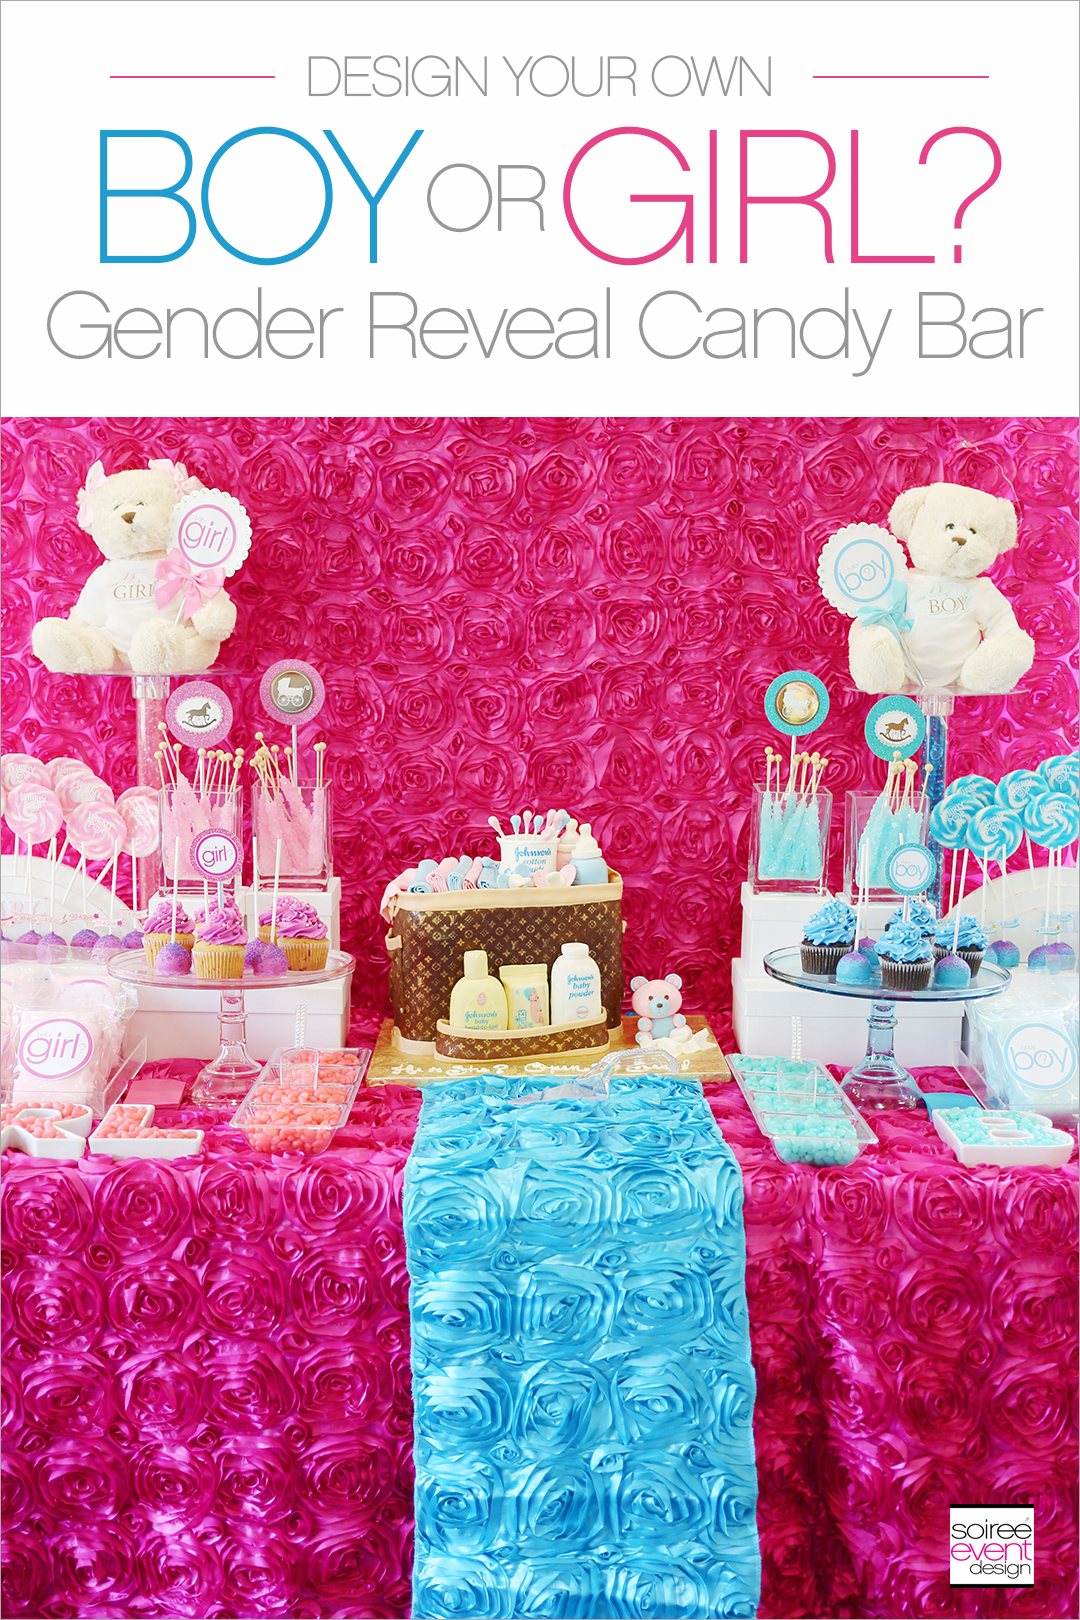 How to set up a Gender Reveal Party Candy Buffet